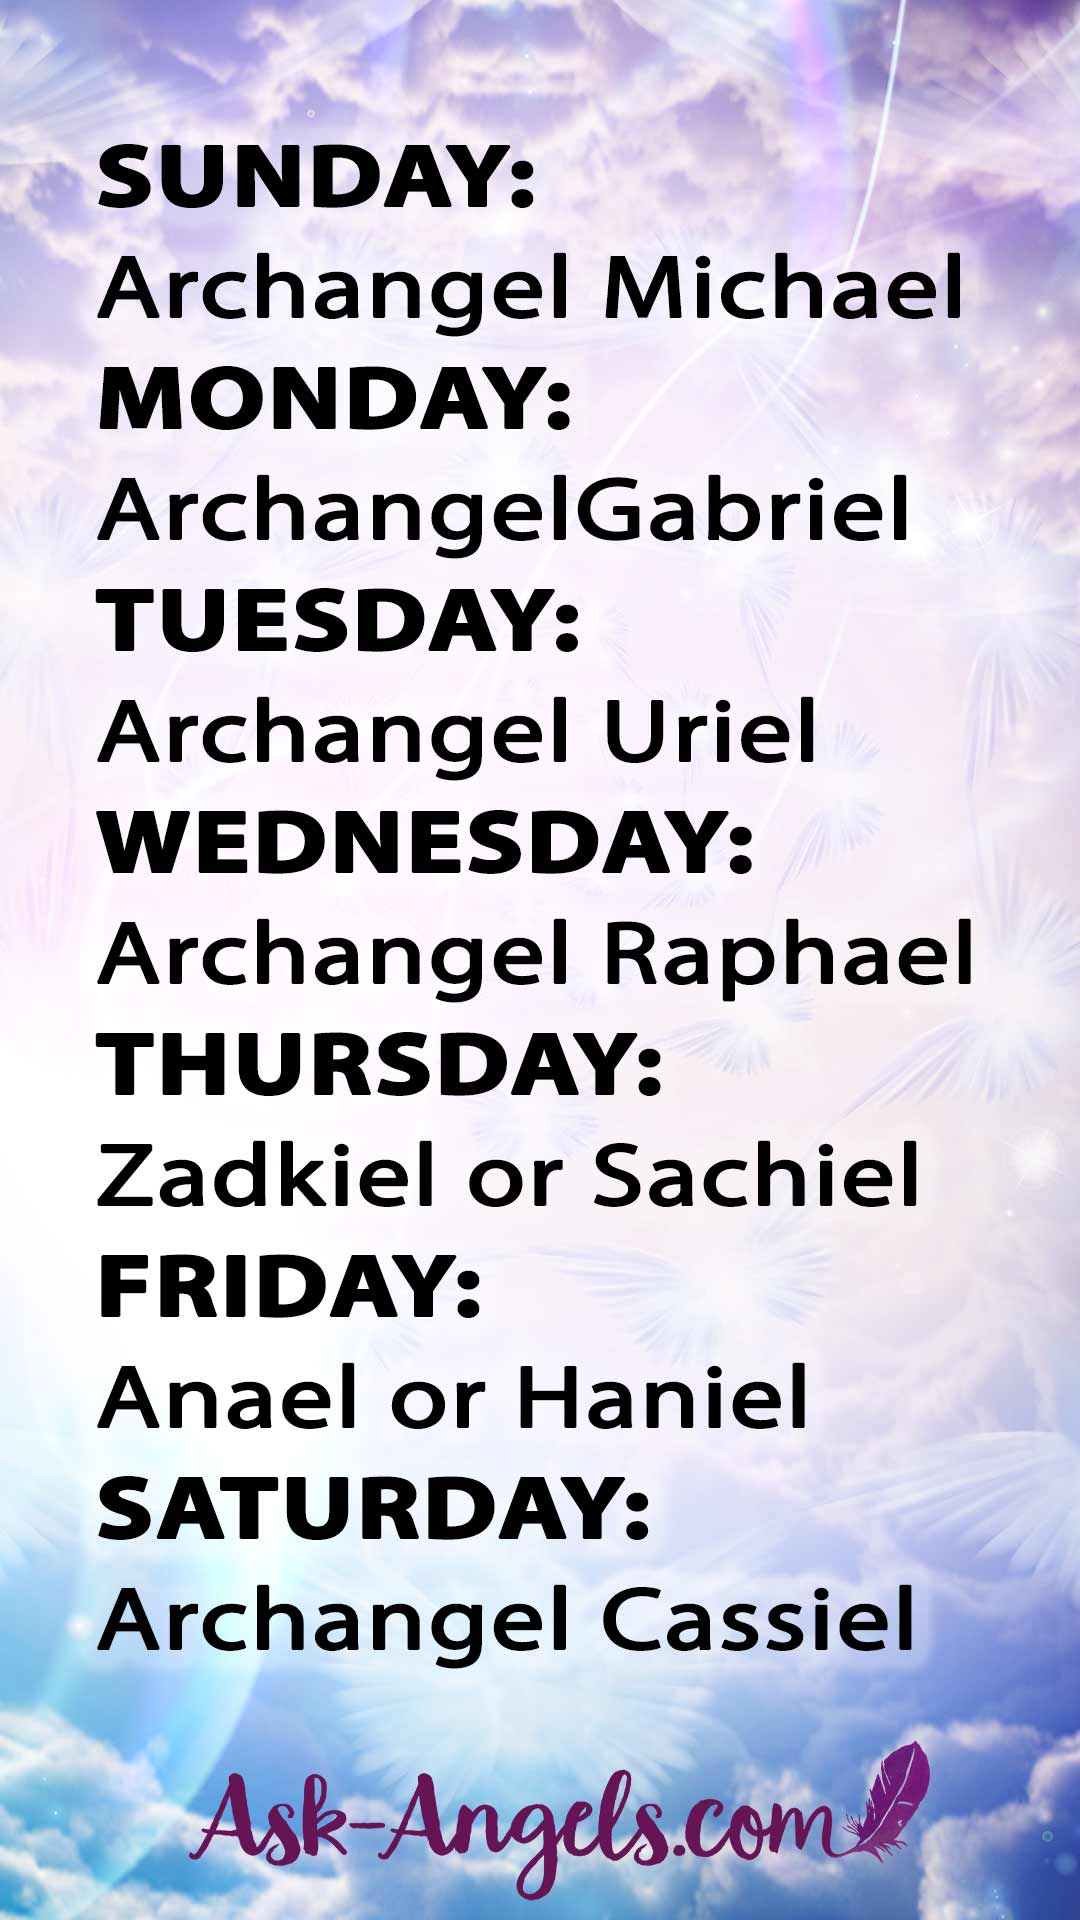 901 best Angels images on Pinterest | Fantasy characters ... |7 Archangels Names And Meanings